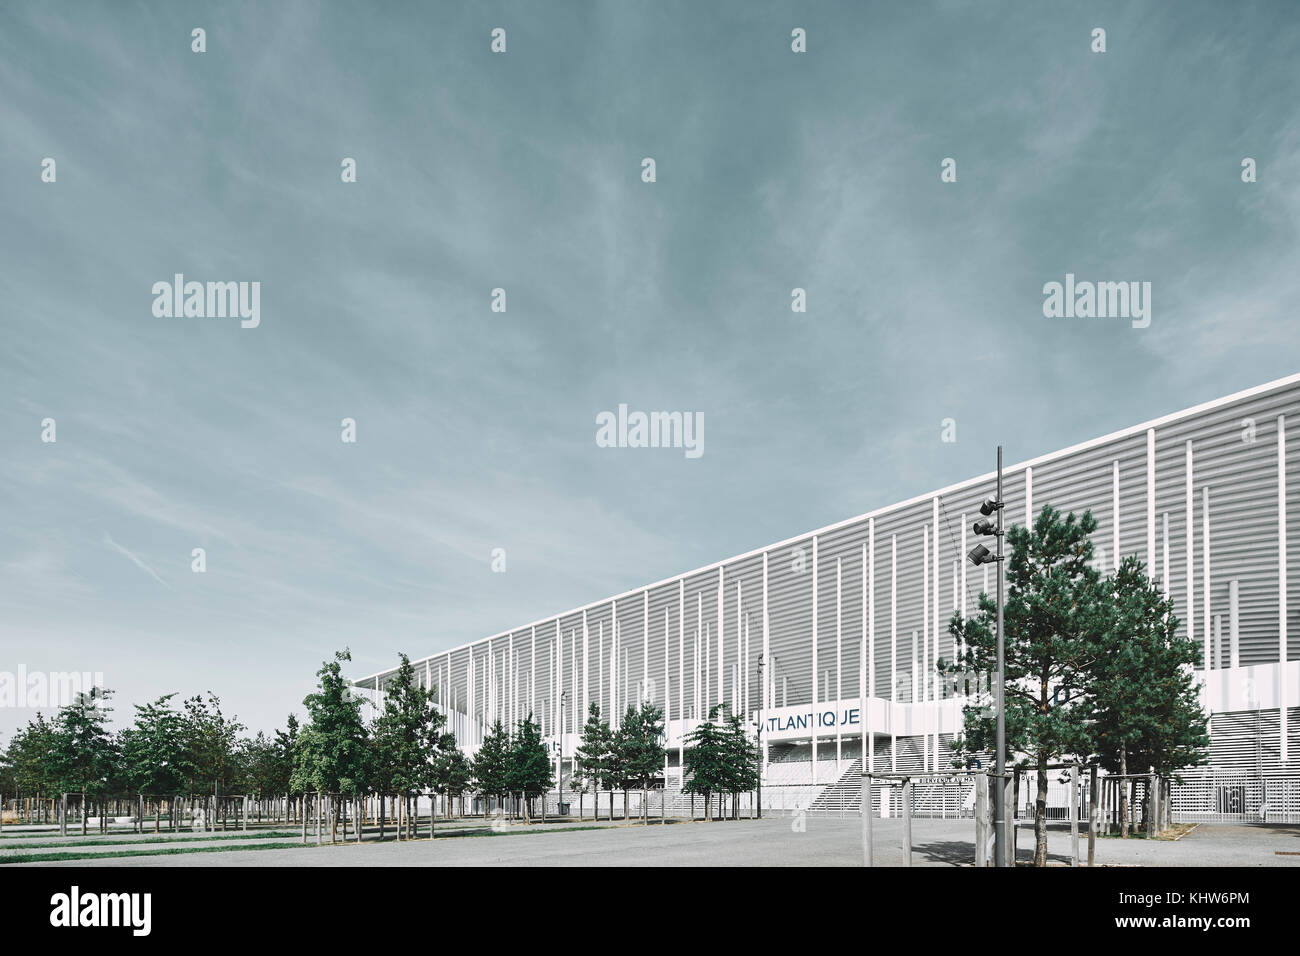 Angled view of the Nouveau Stade de Bordeaux football stadium, Aquitaine, France - Stock Image